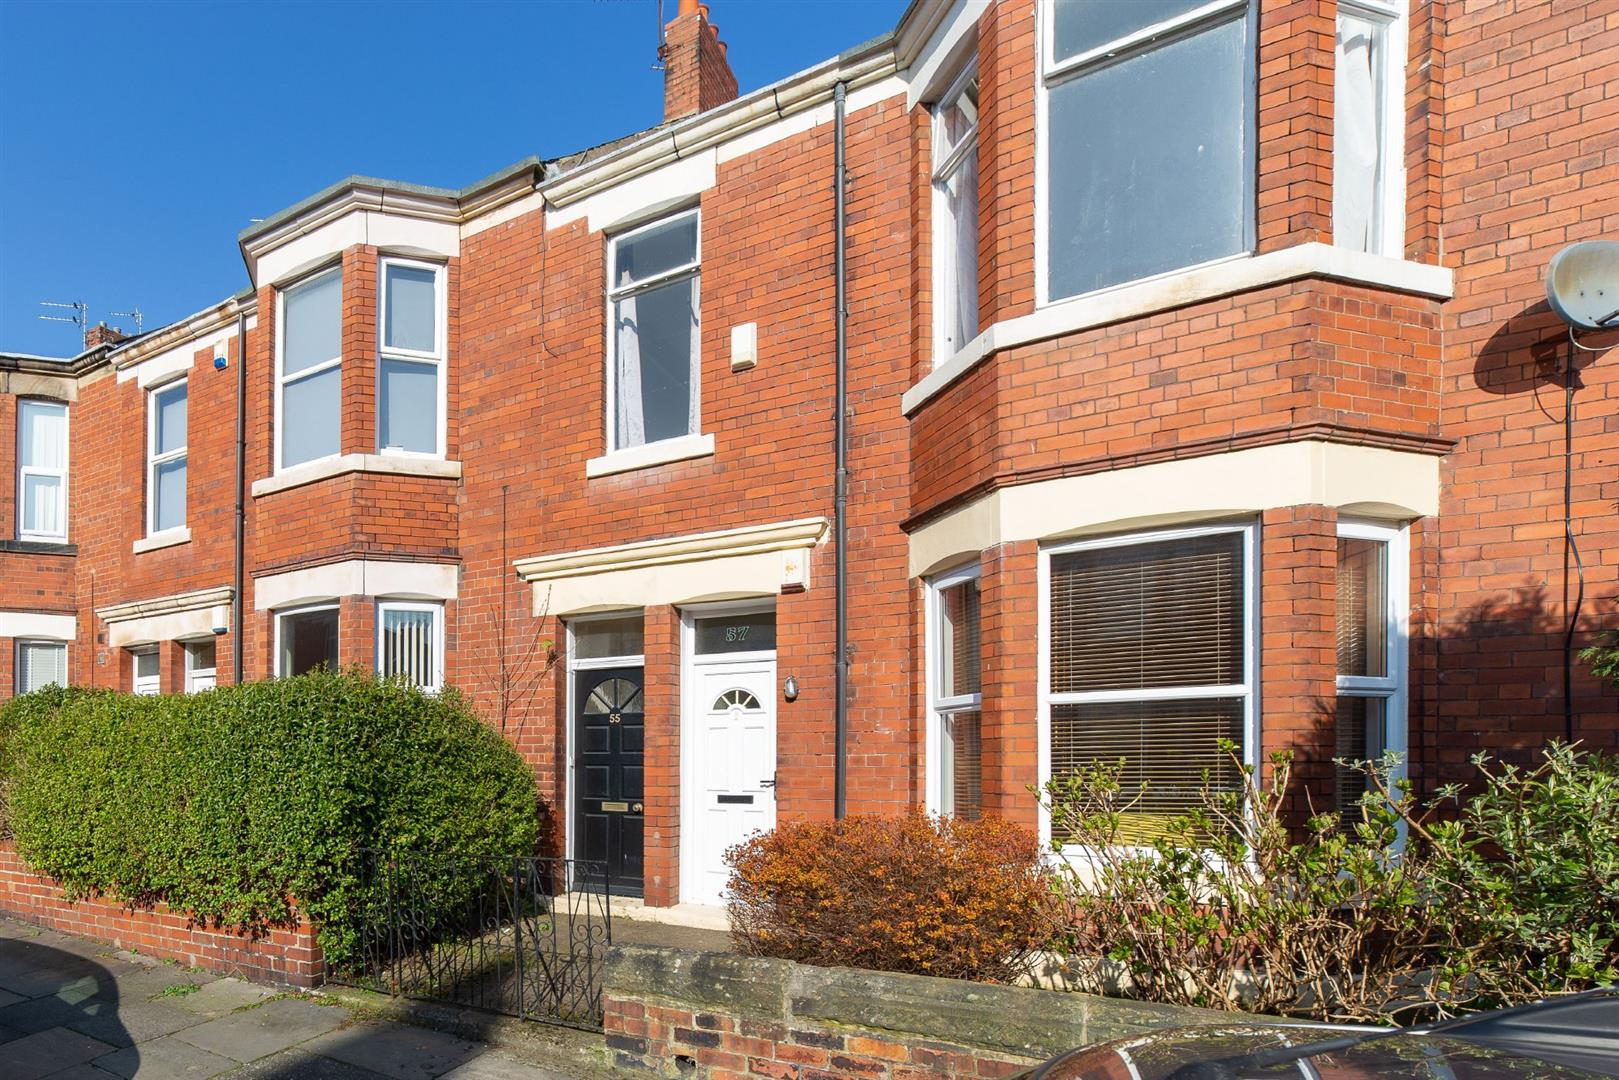 3 bed flat for sale in Newcastle Upon Tyne, NE6 5LY - Property Image 1